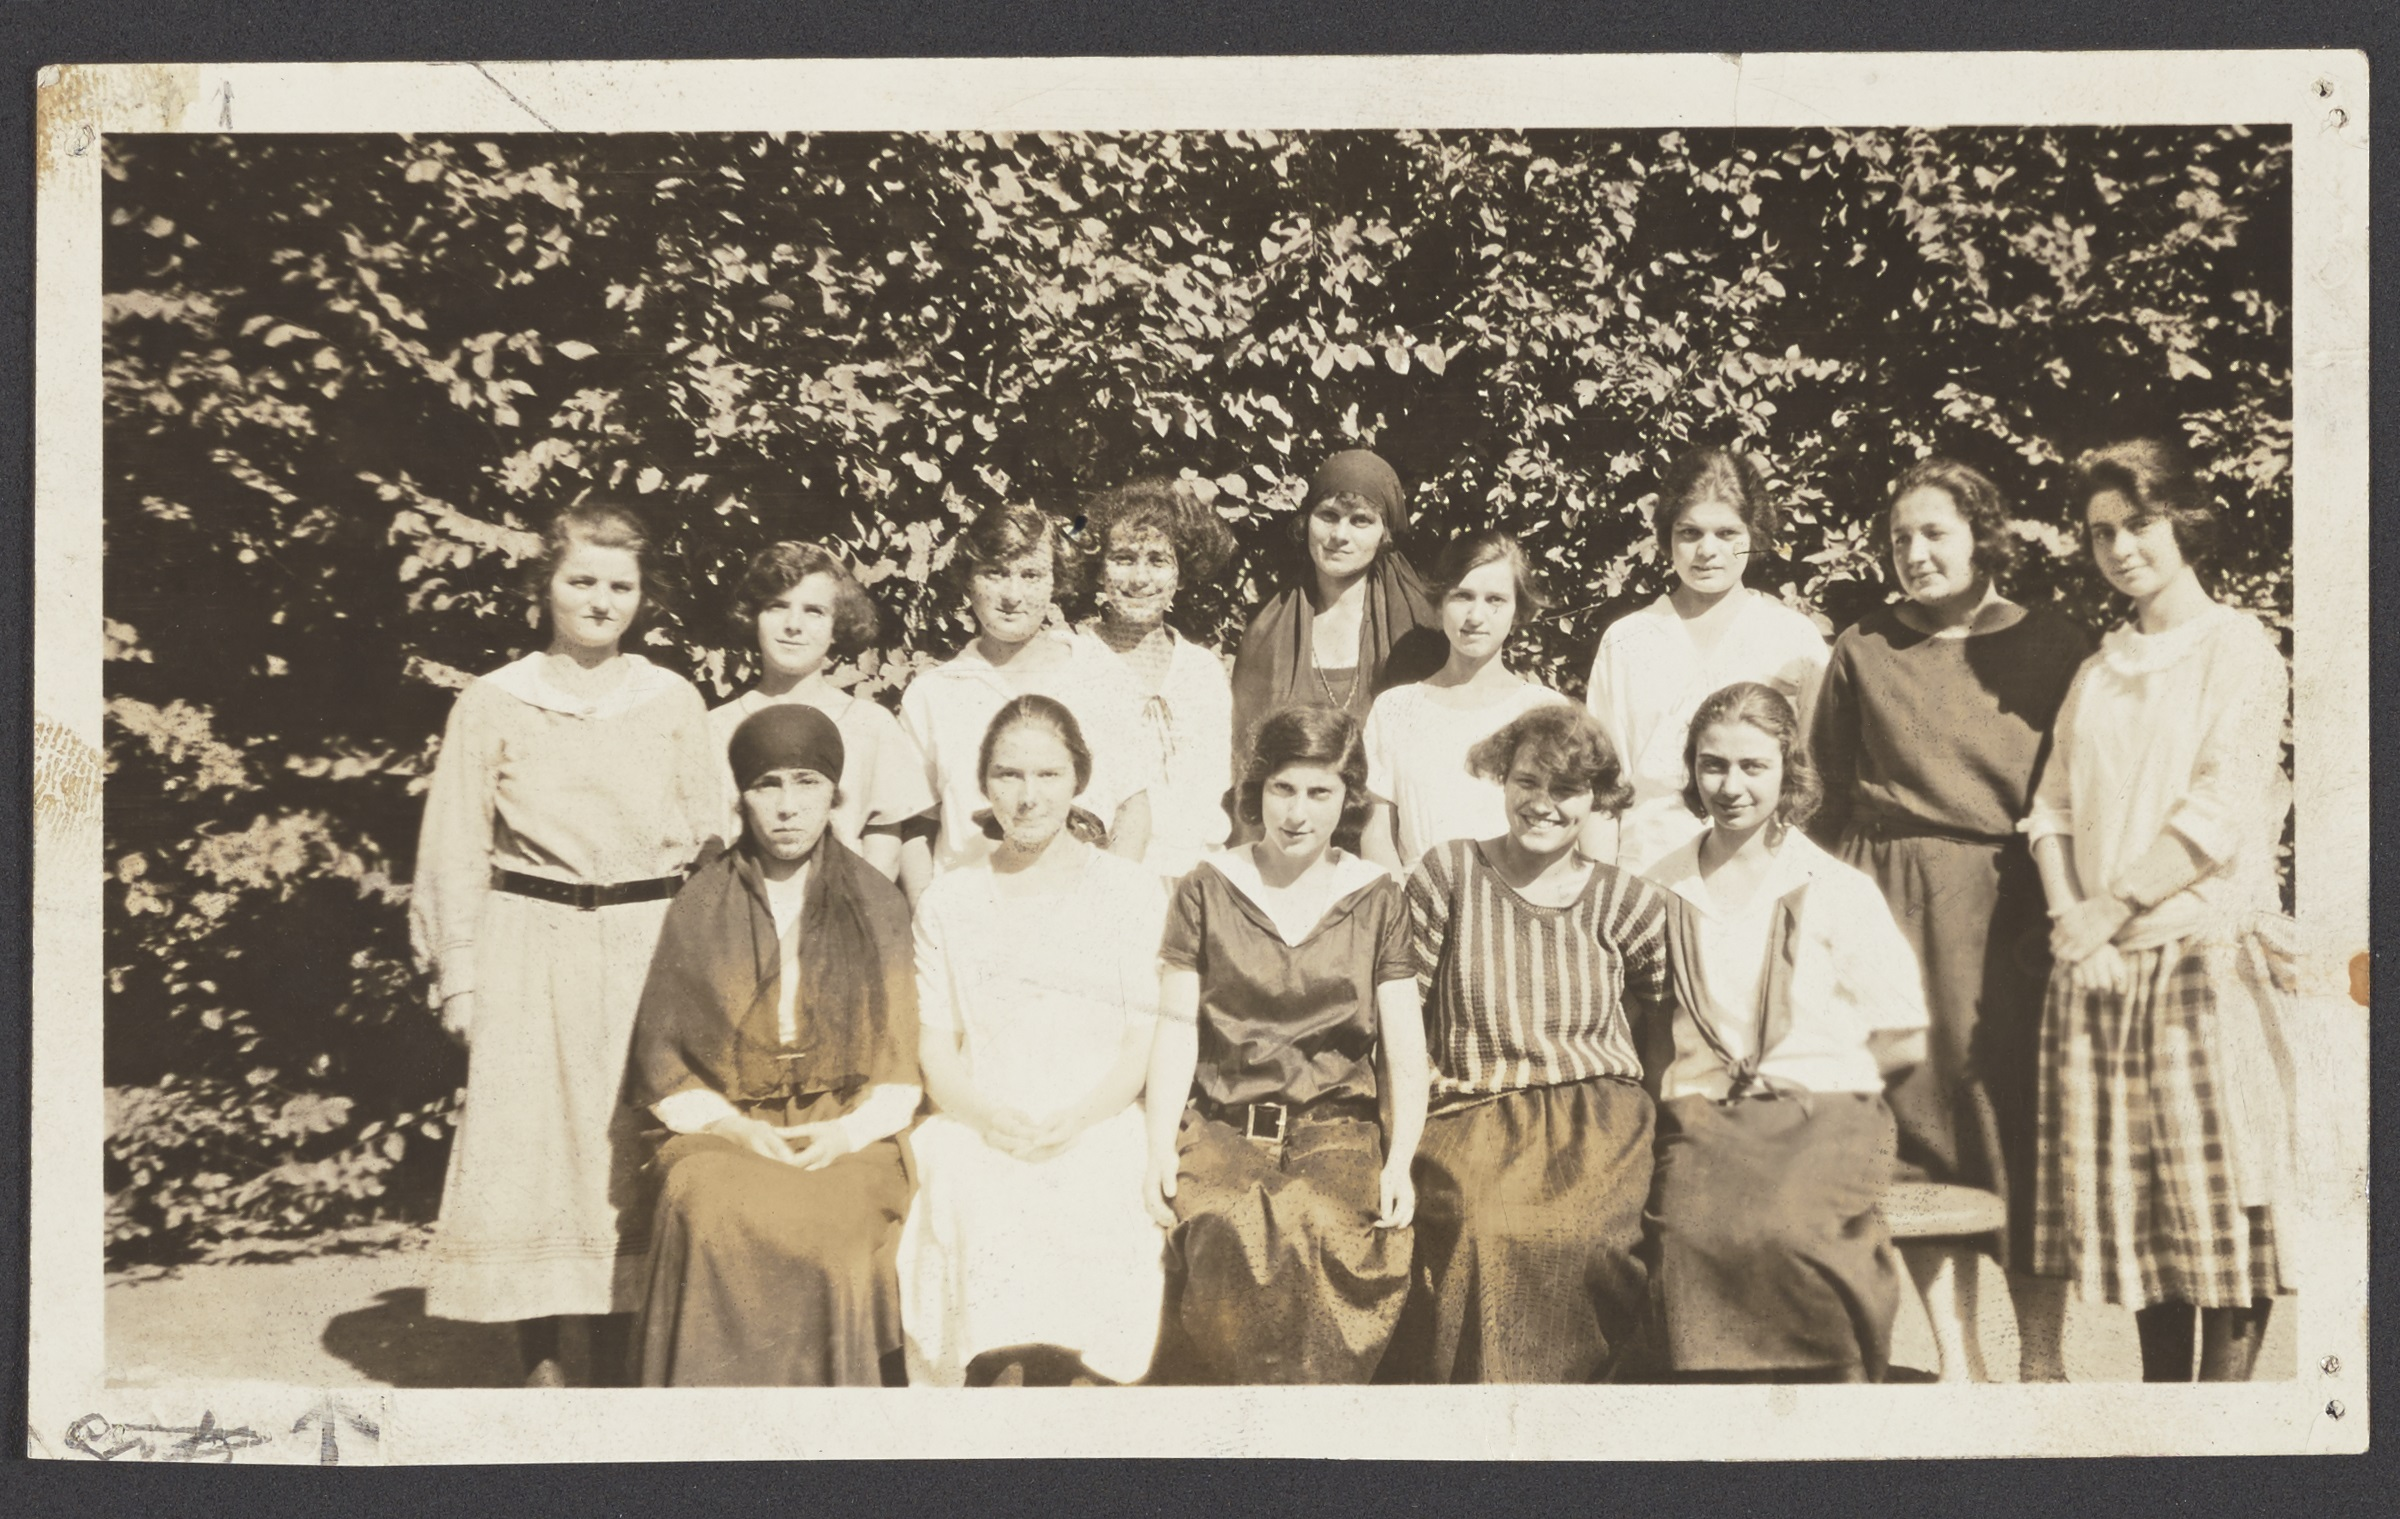 Students of different nationalities, American College for Girls. Student nationalities, top row, left to right: English, Albanian, Circassian, Armenian, Turkish, Russian, Georgian, Iranian, American. Student nationalities, bottom row: Arabian, Austrian, Jewish, Bulgarian, Greek